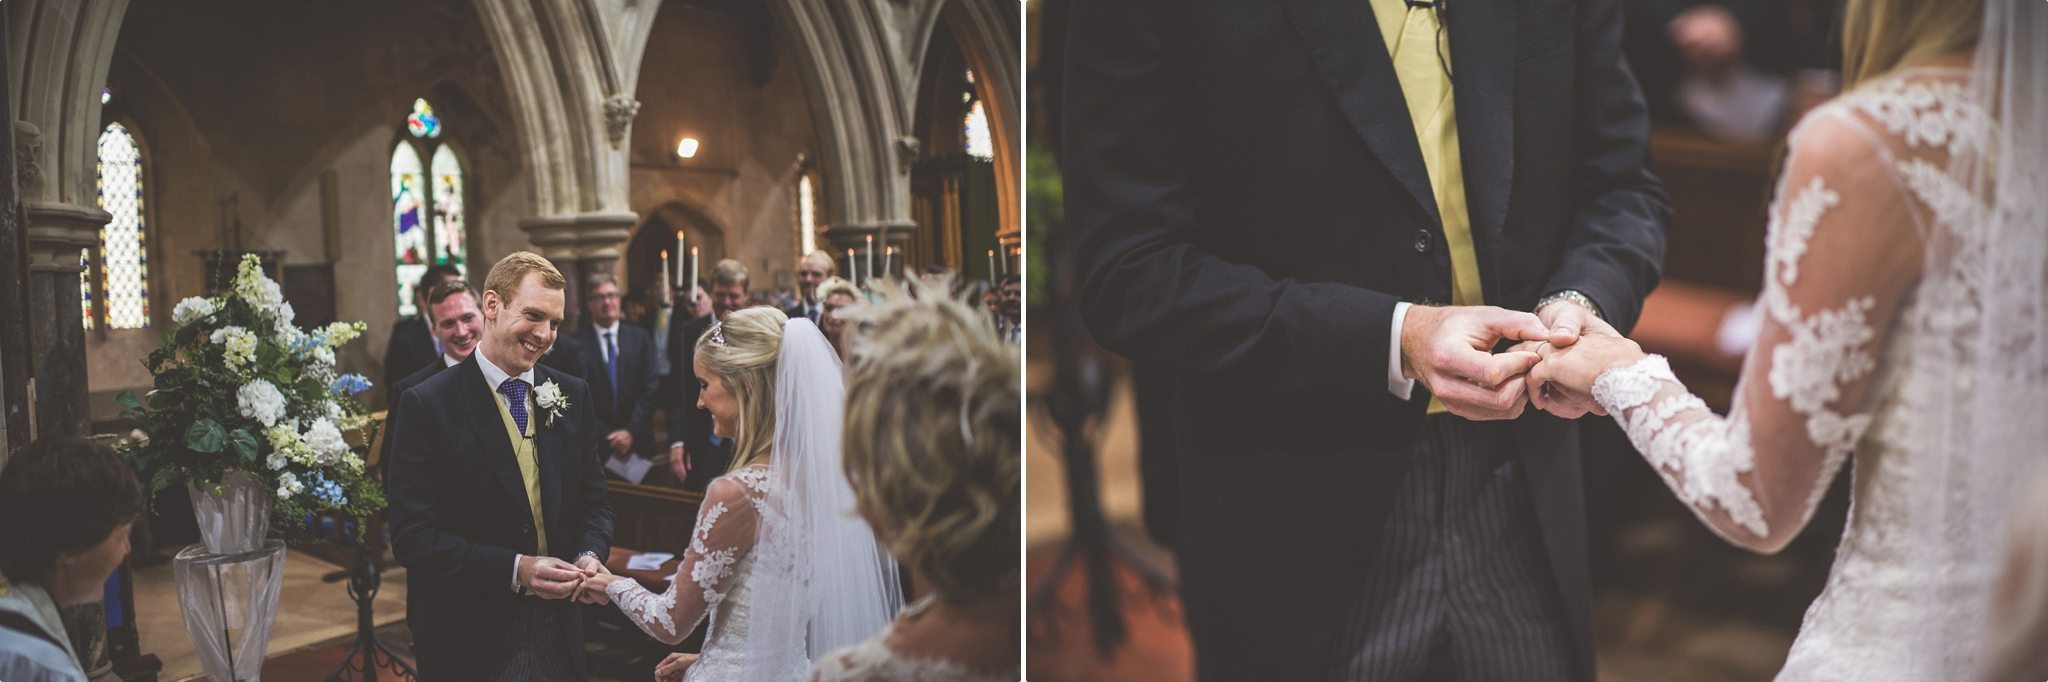 st-audries-park-wedding-maria-assia-photography-314